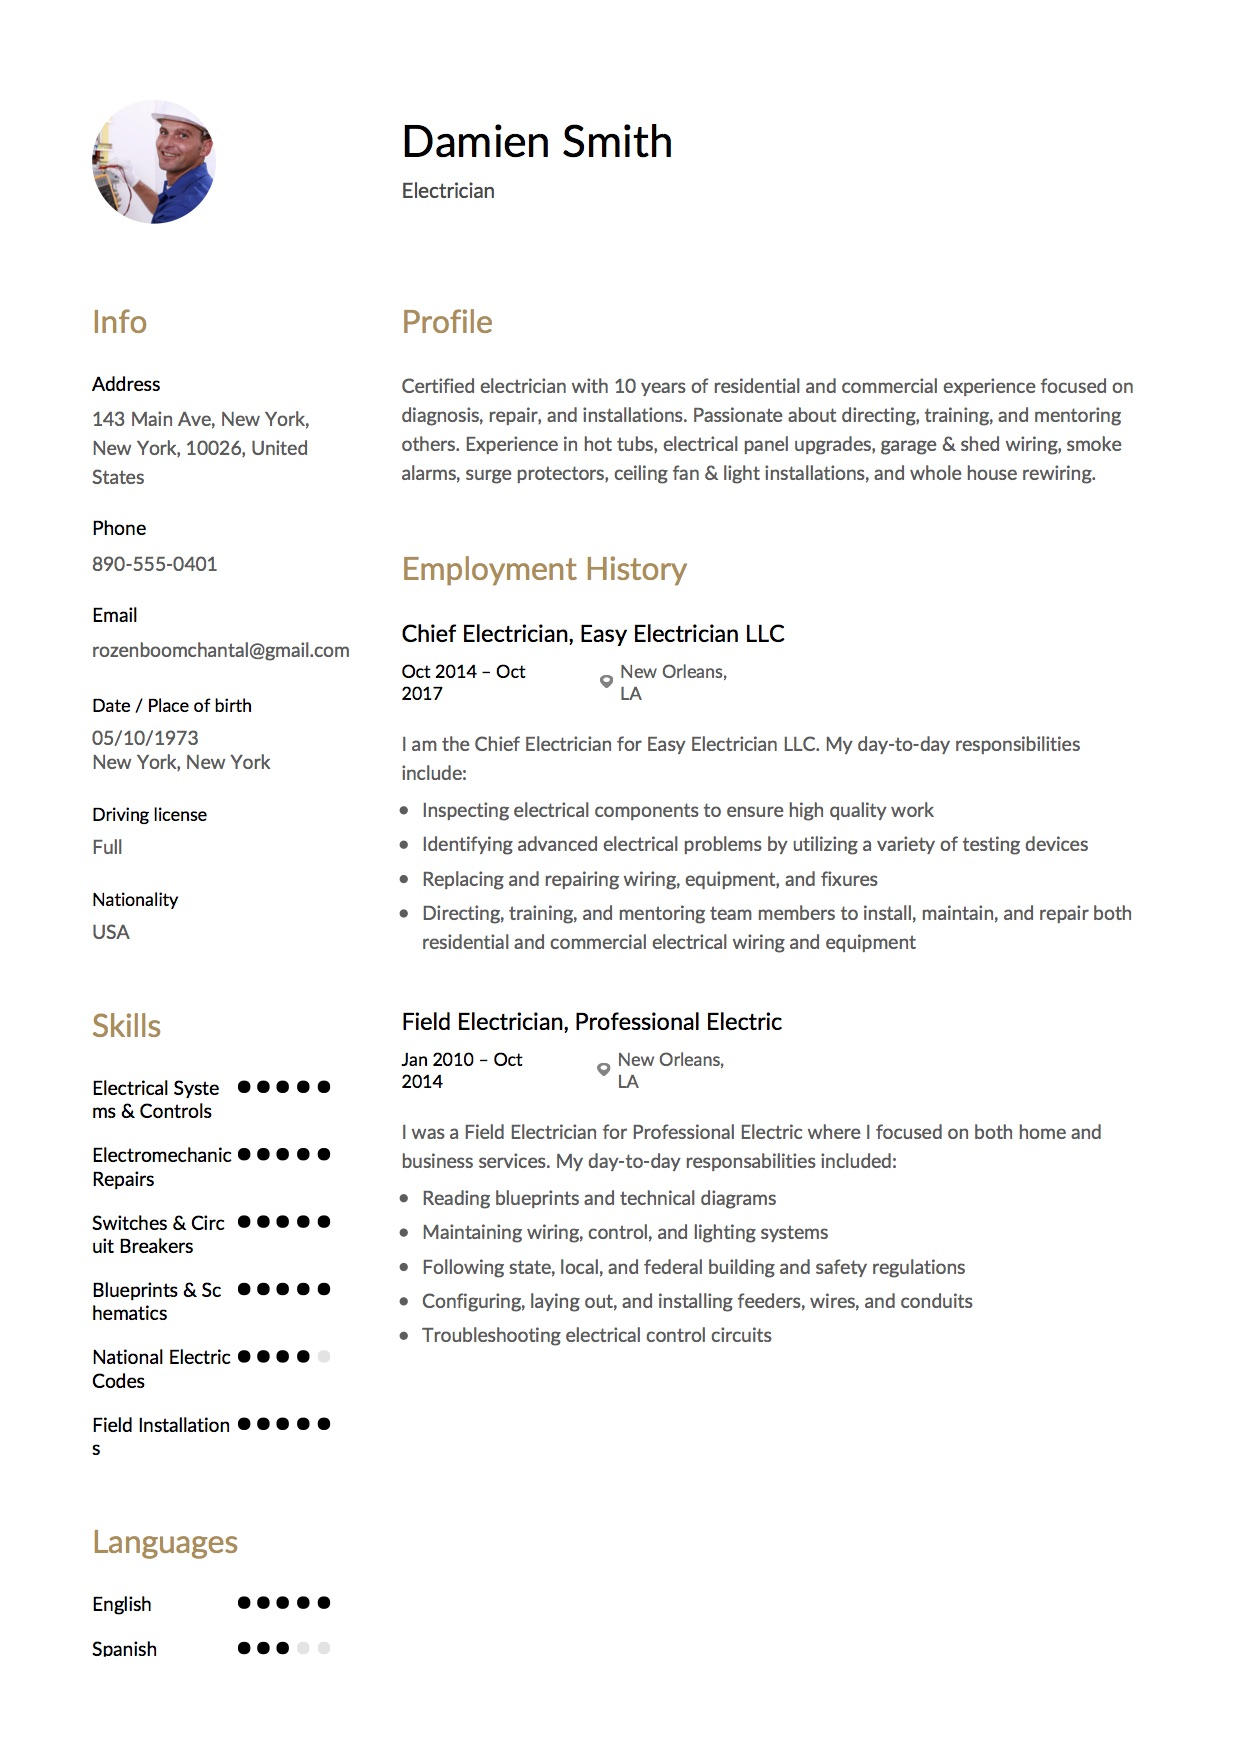 damien smith resume electrician example - Resume For Electrician